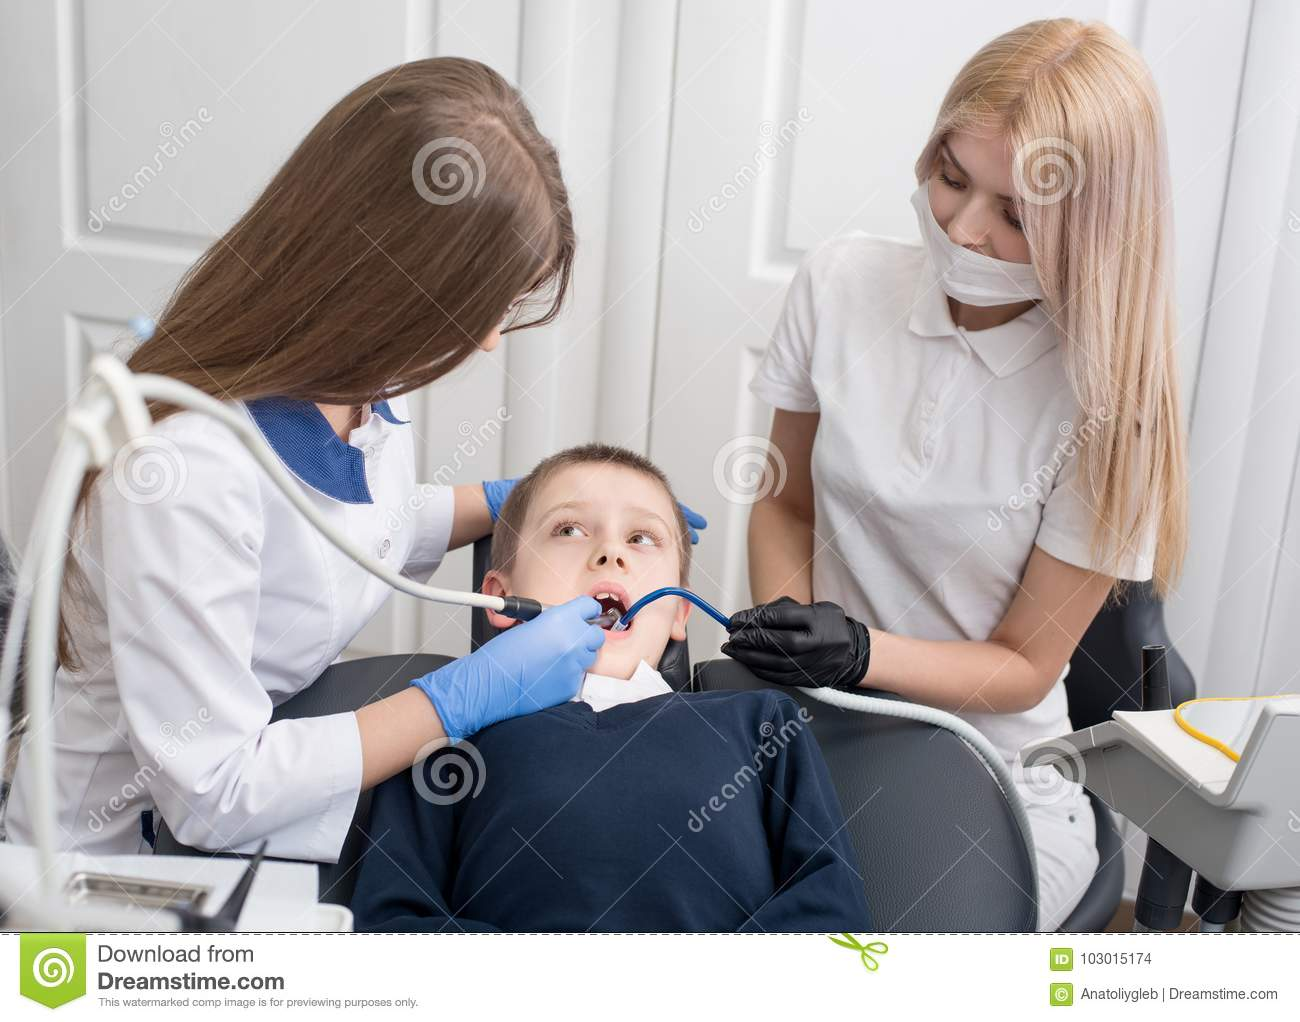 Young female dentists examining and working on boy patient